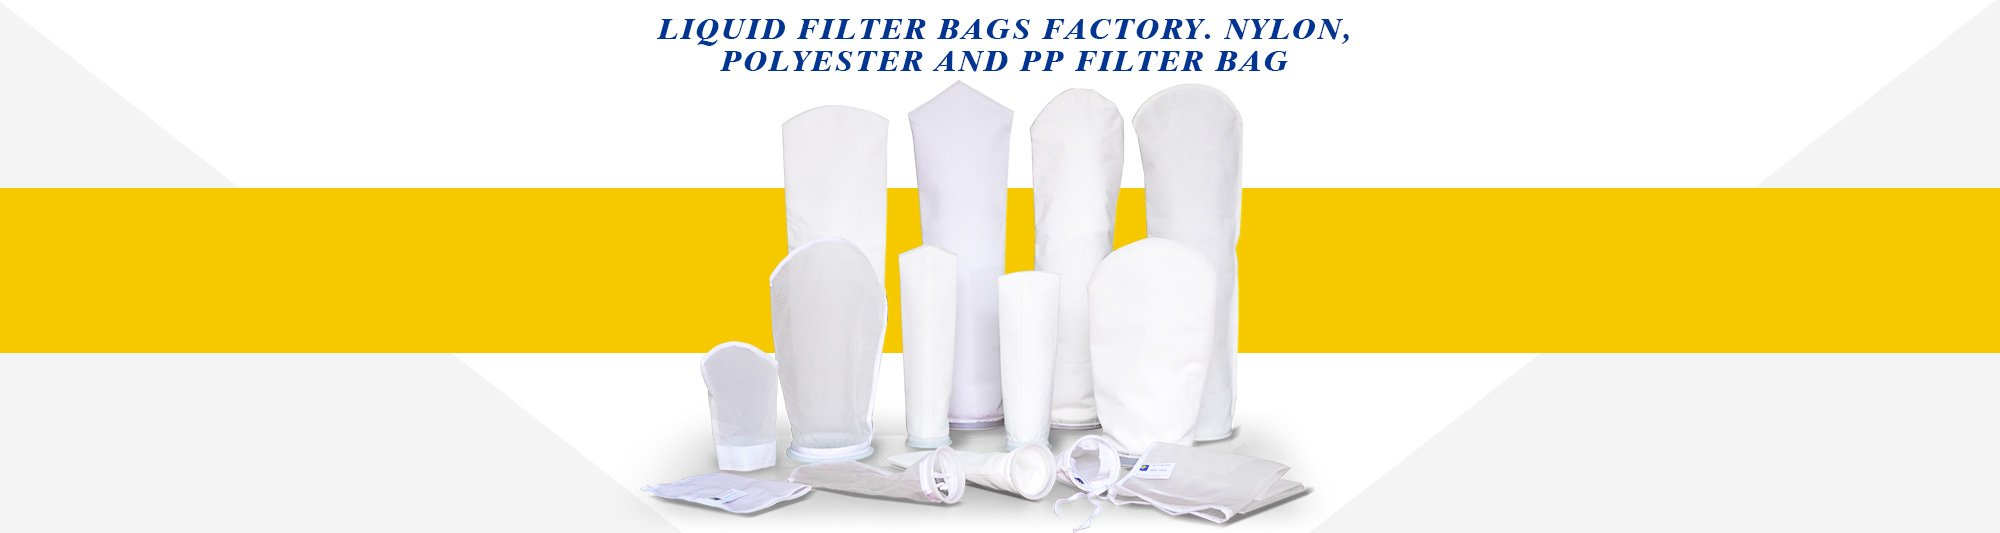 liquid filter bags factory. Nylon, Polyester and PP filter bag